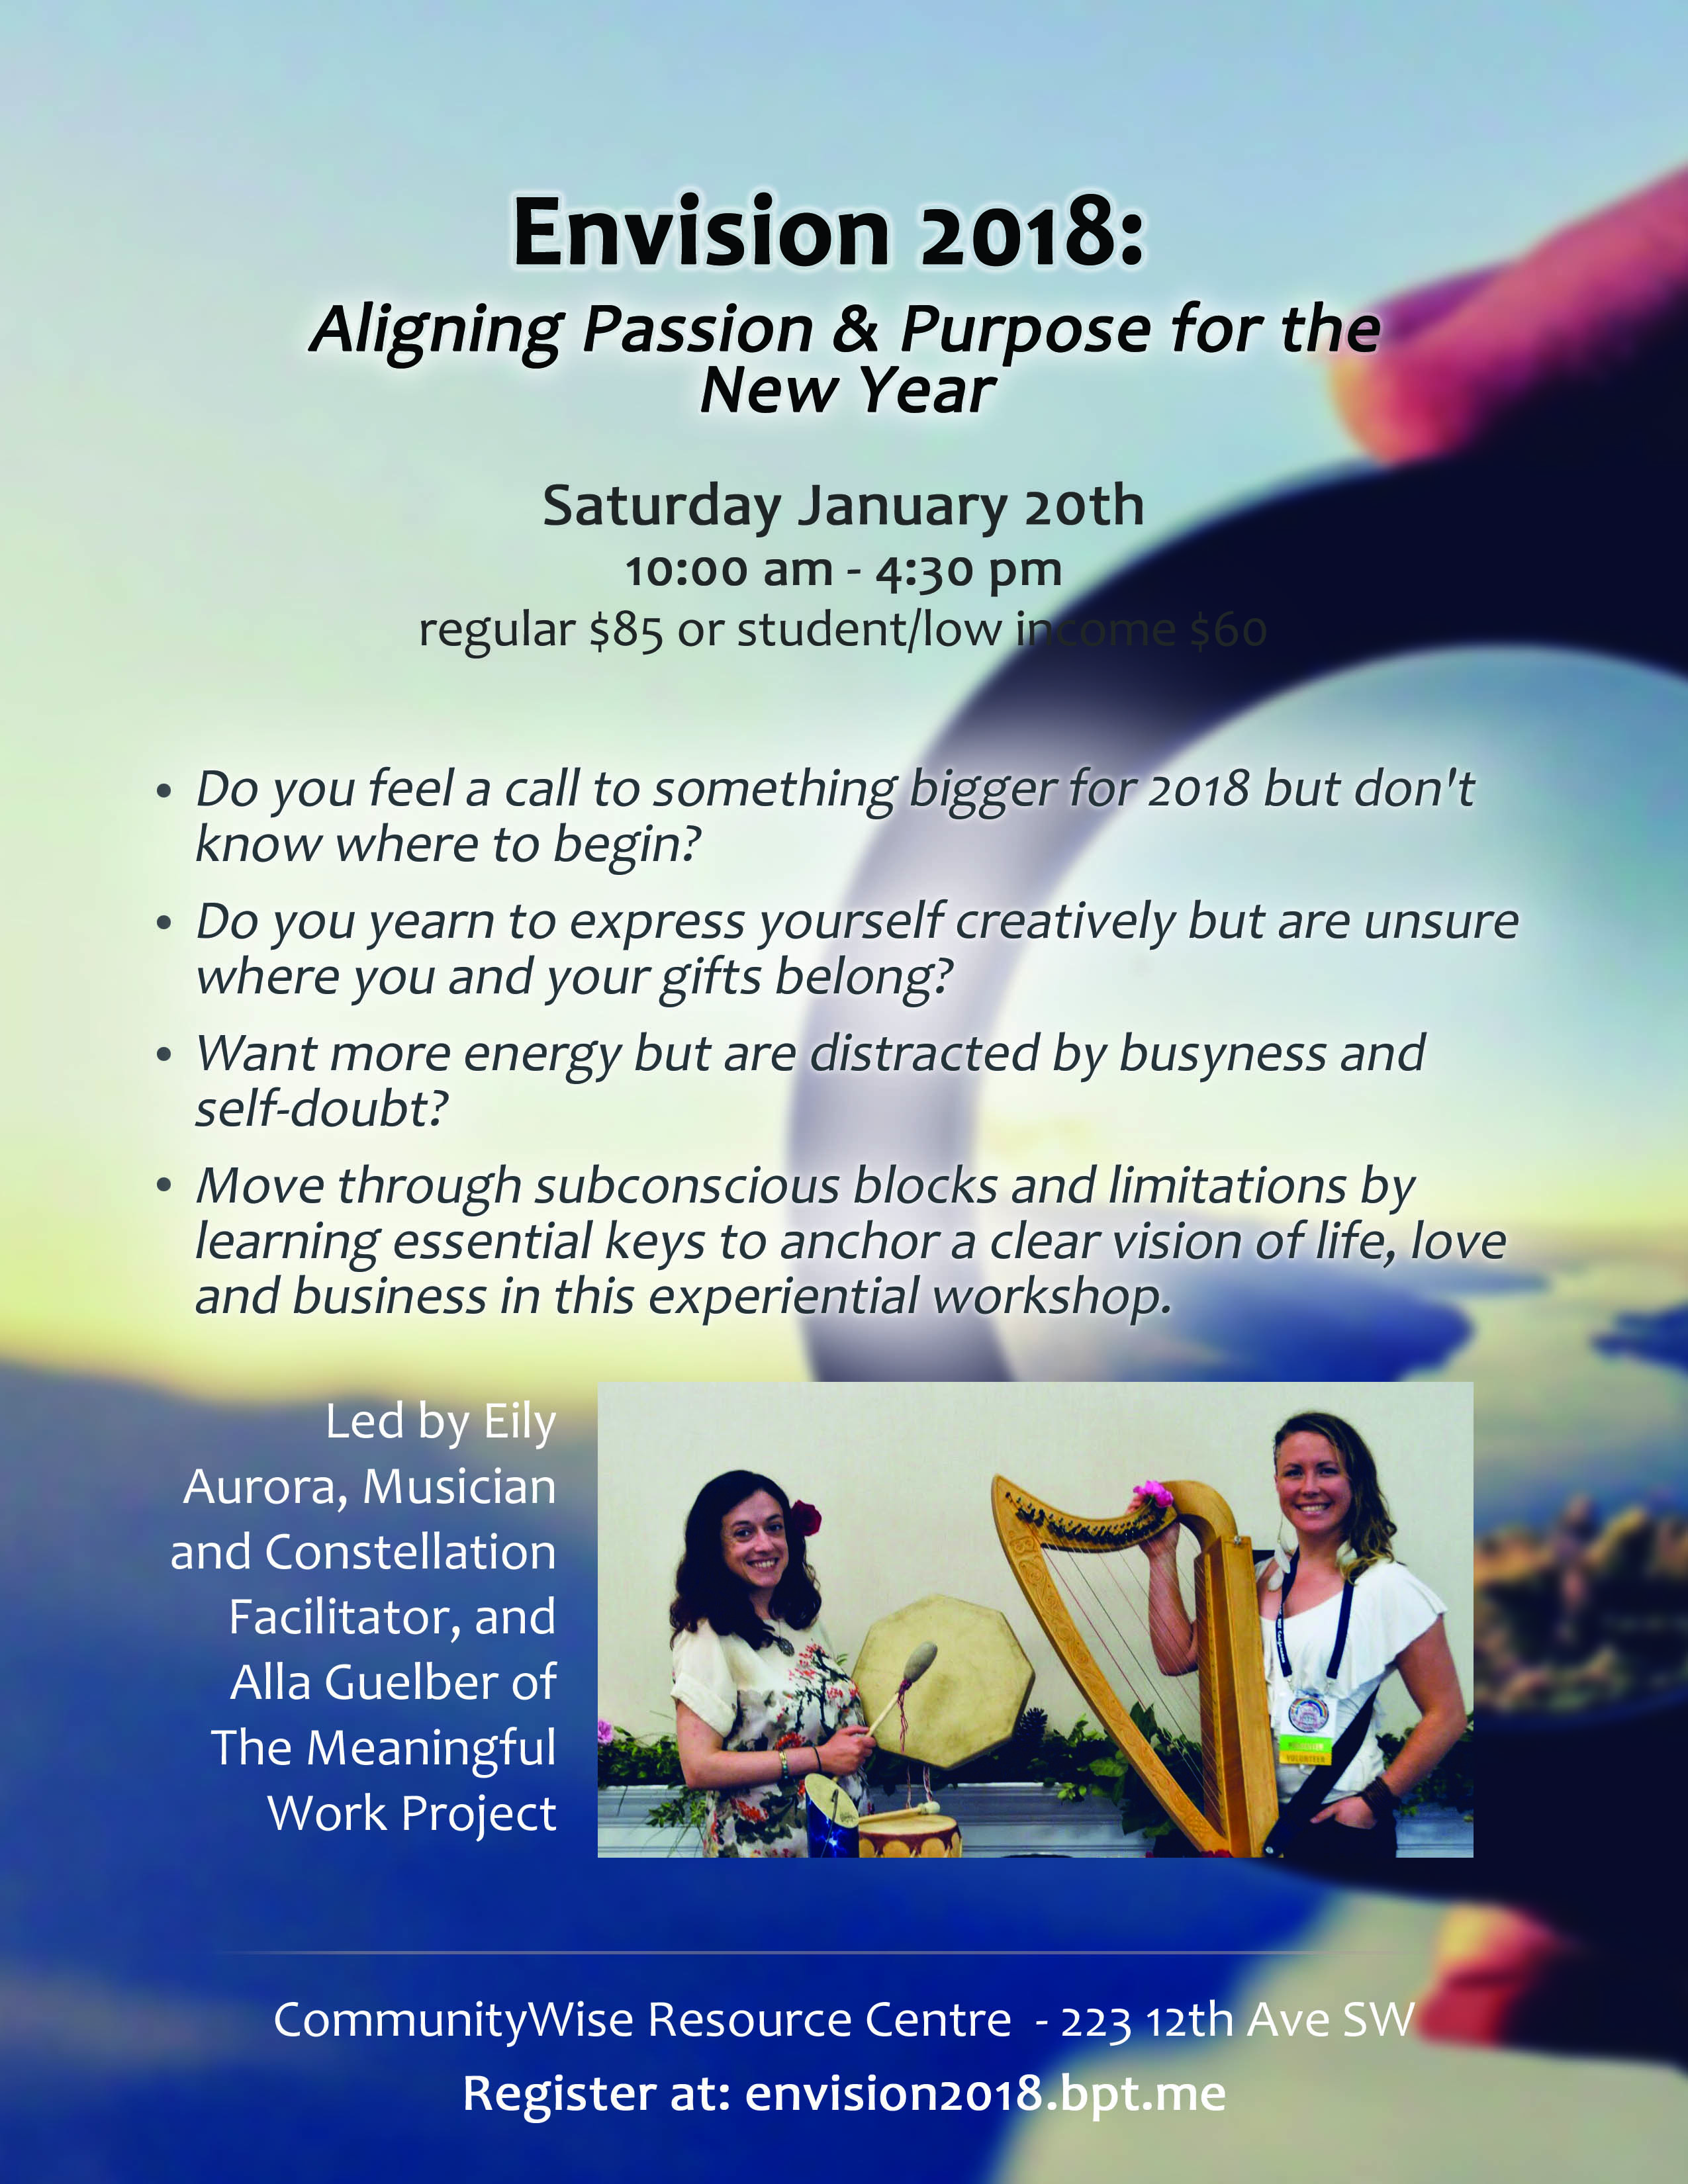 Envision 2018: Aligning Passion and Purpose for the New Year ...